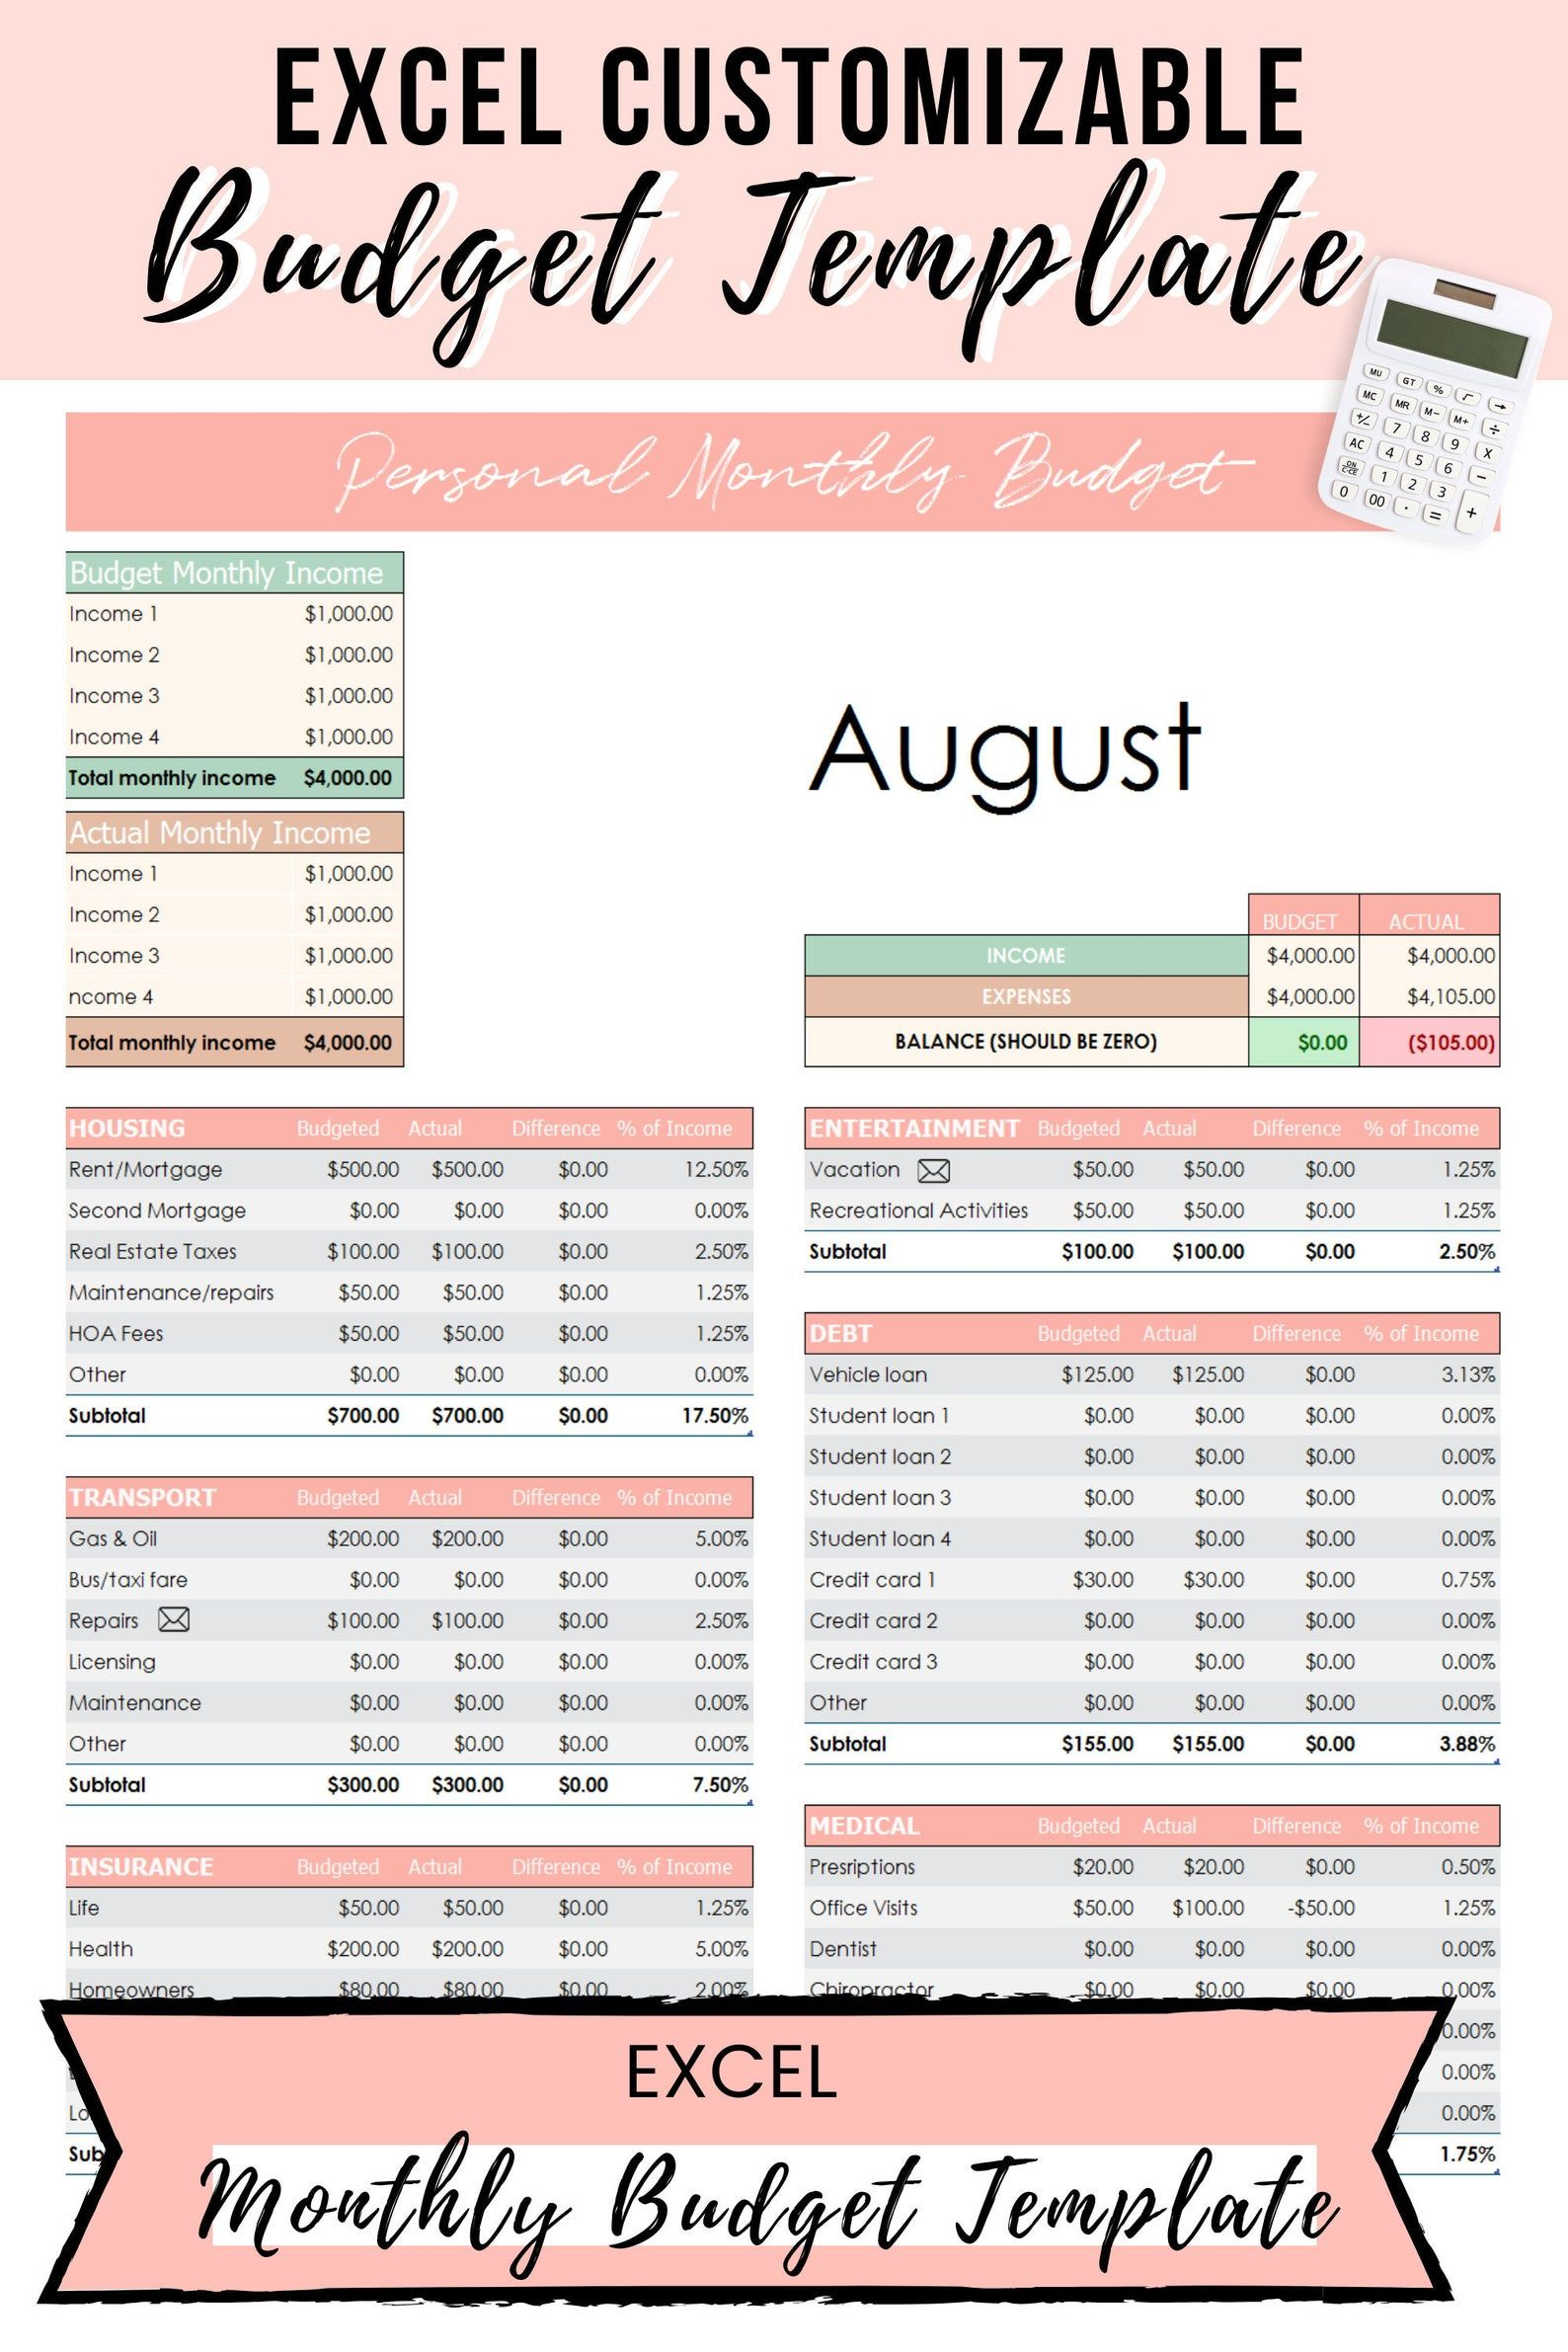 Excel Budget Template, Dave Ramsey Budget Template